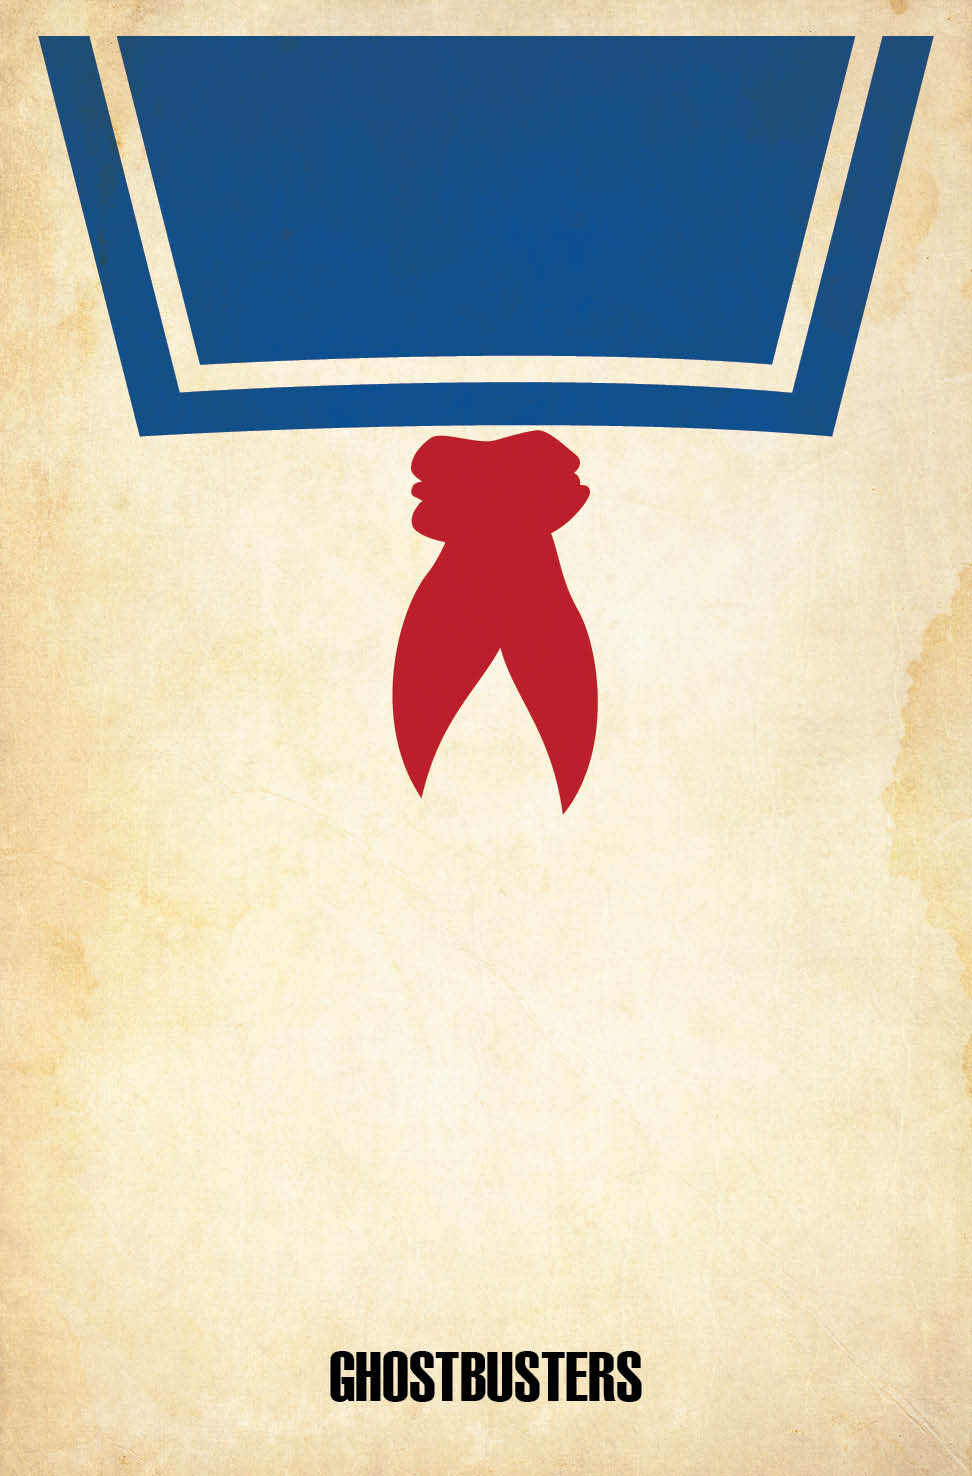 Cool Collection Of Minimalist Movie Poster Art - News - Geektyrant